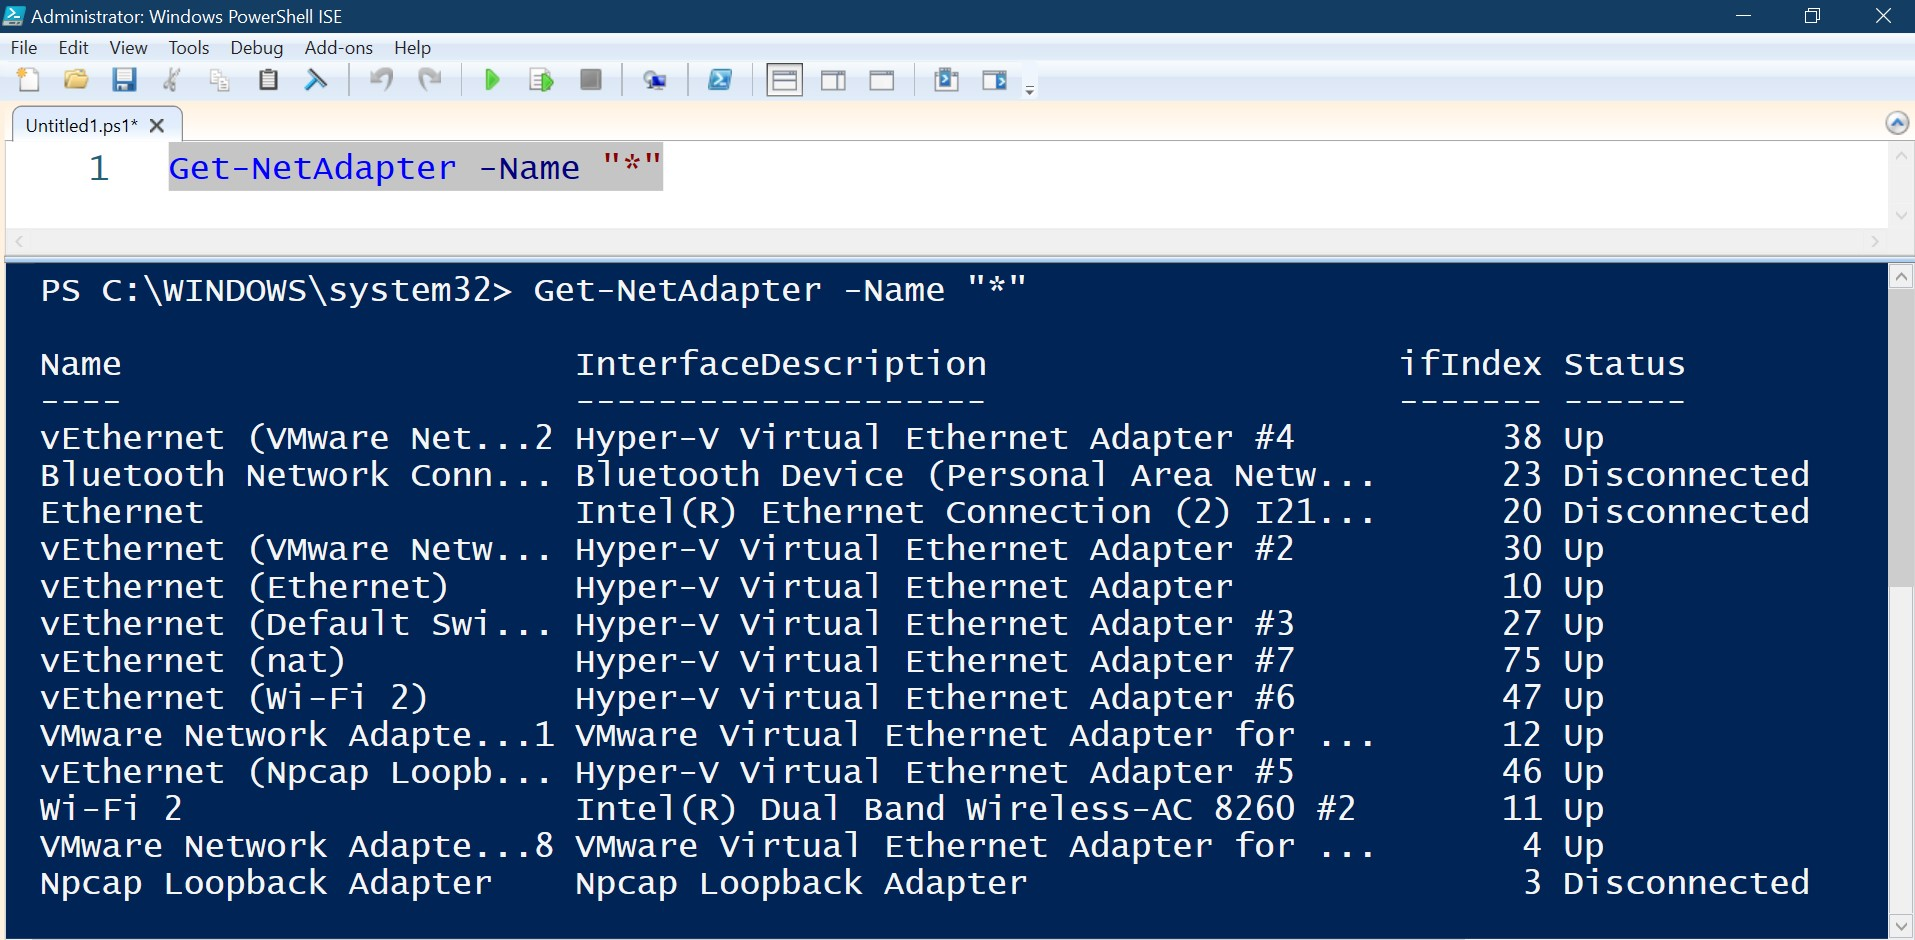 how to see all visible network adapters in microsoft powershell